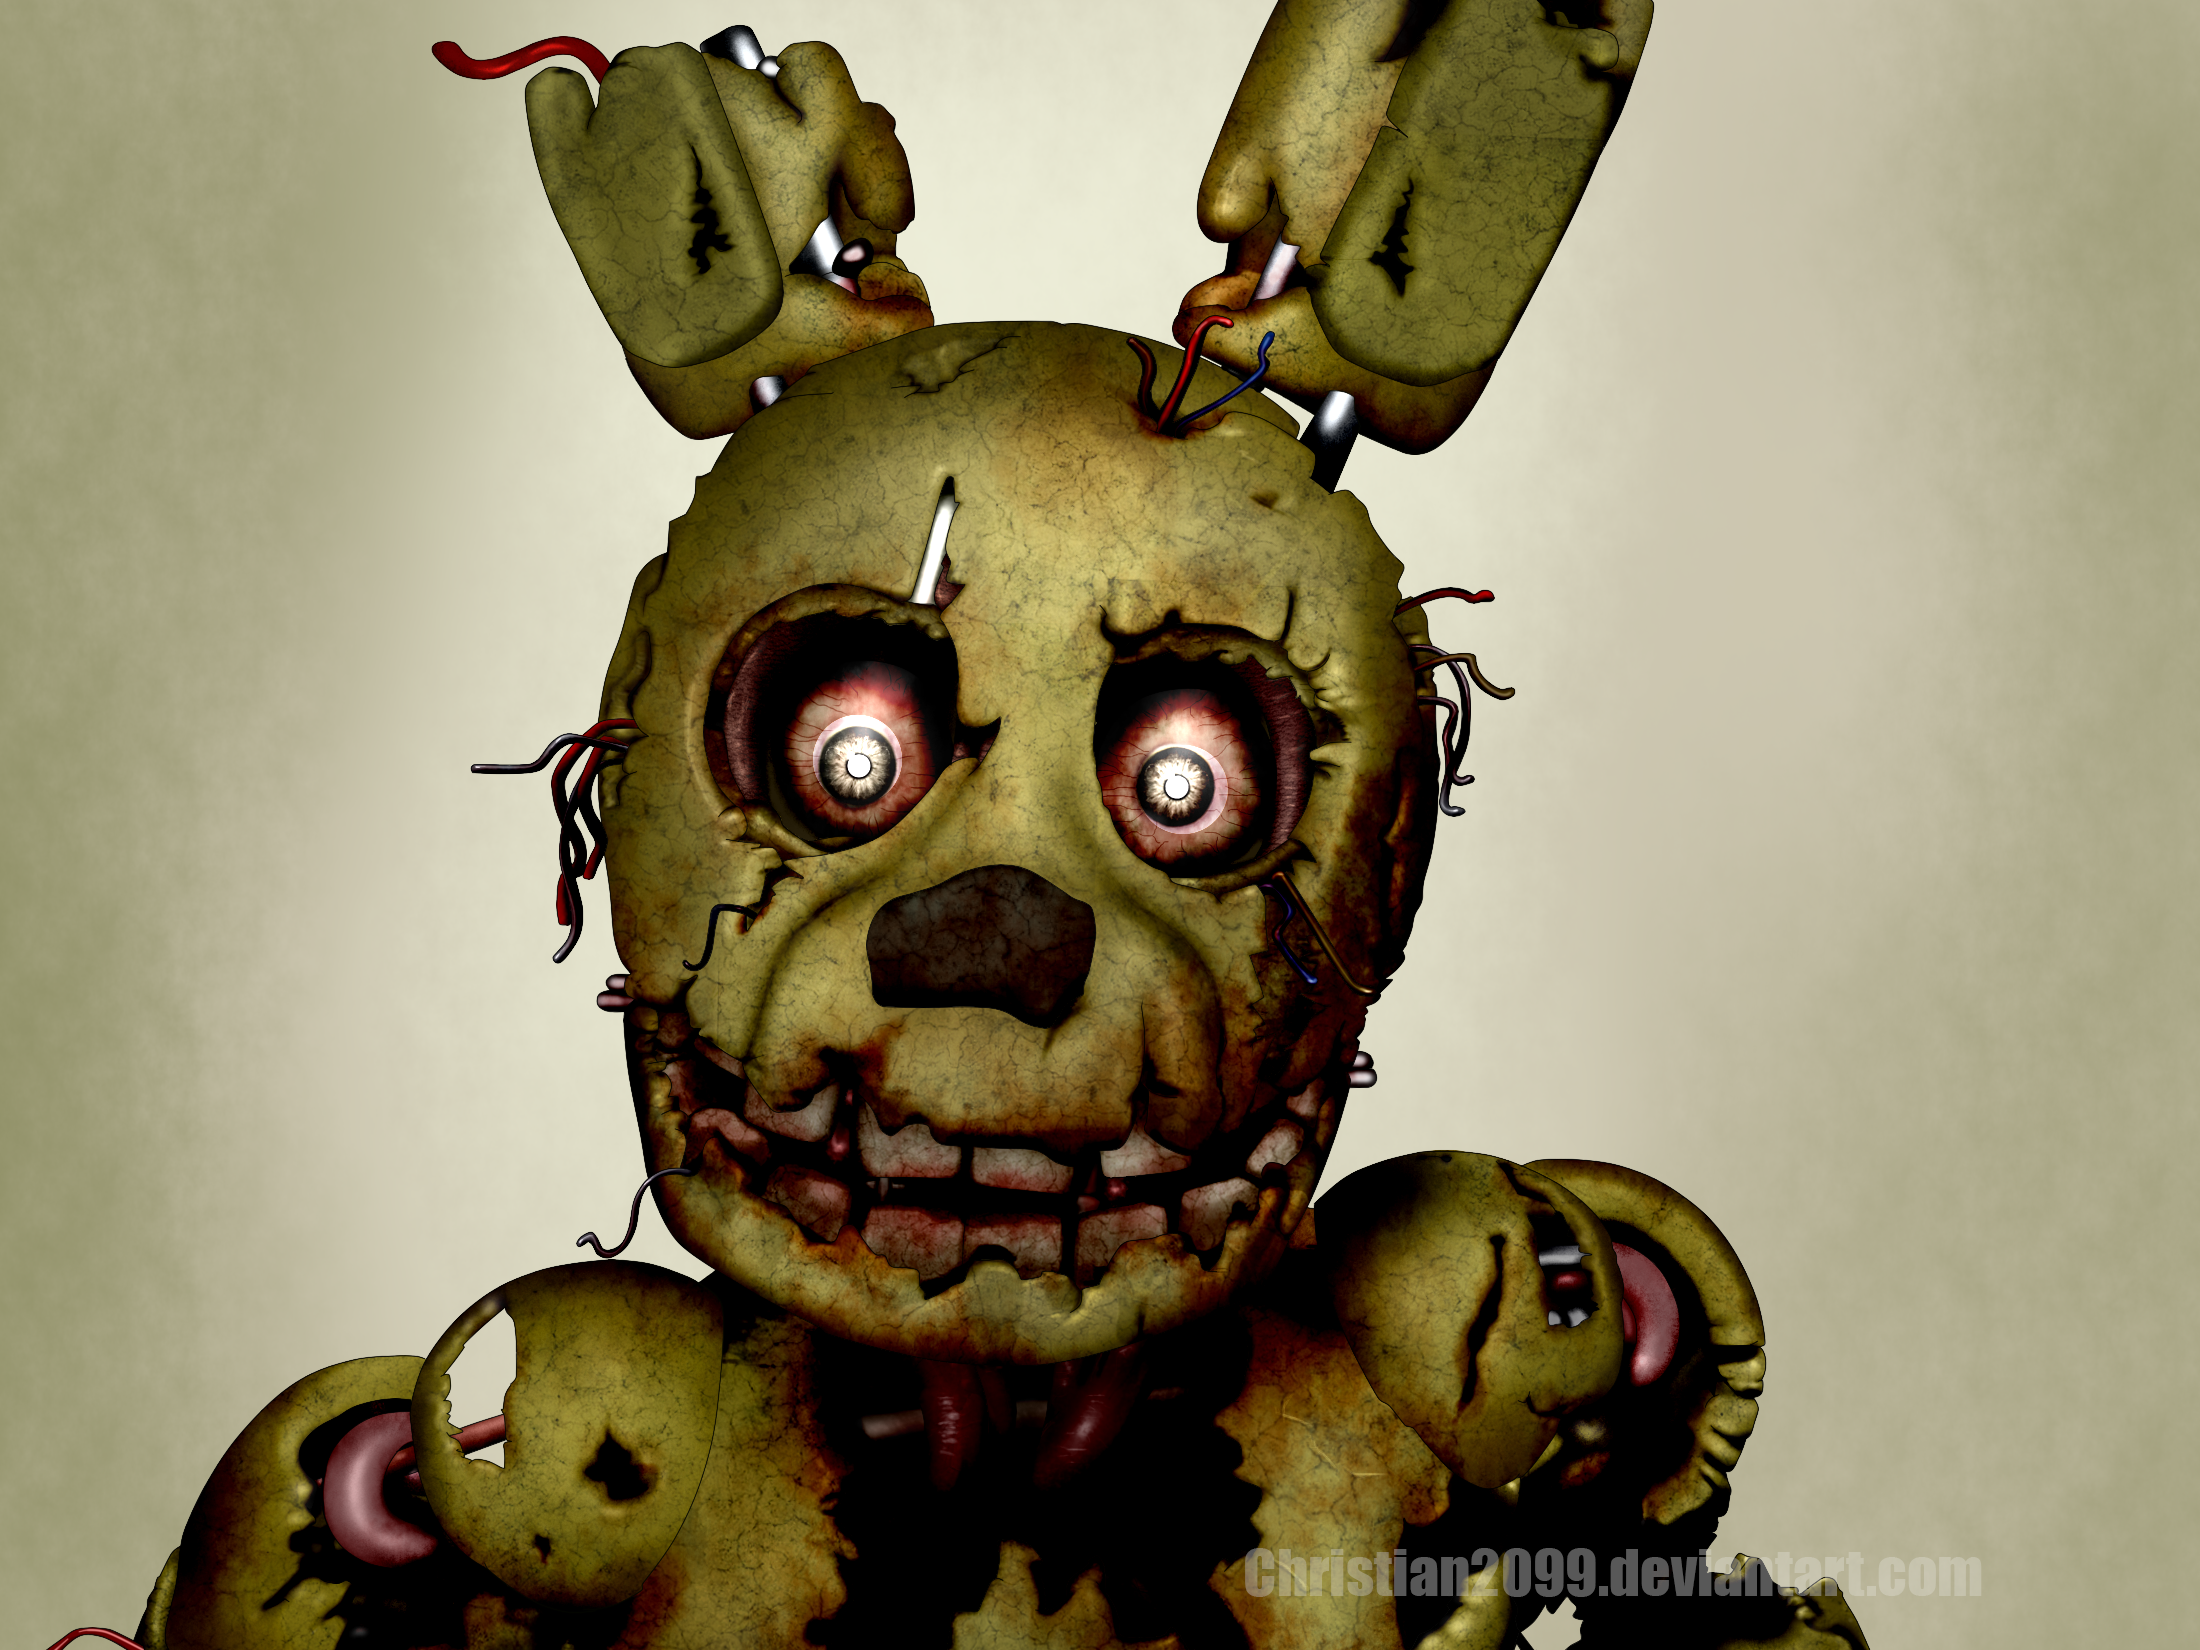 Five nights at freddy 39 s 3 springtrap by christian2099 on deviantart - Fotos trap ...